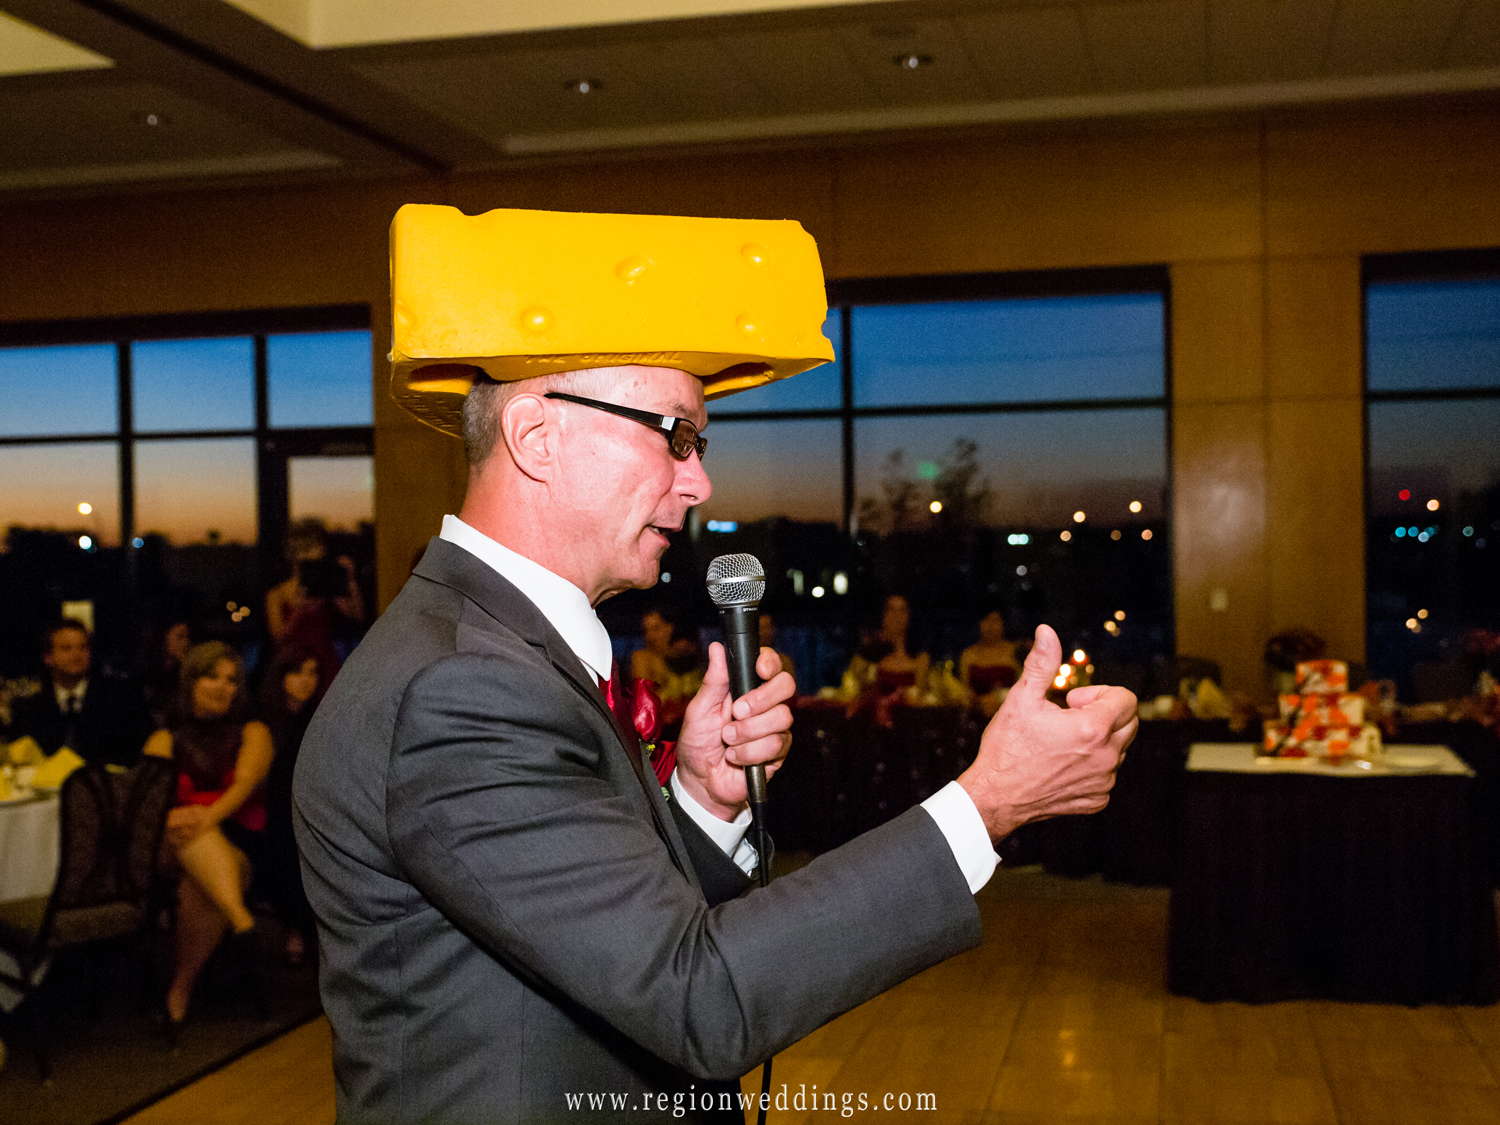 The father of the bride wears a Green Bay Packers cheesehead hat while toasting the ride and groom at their wedding reception.